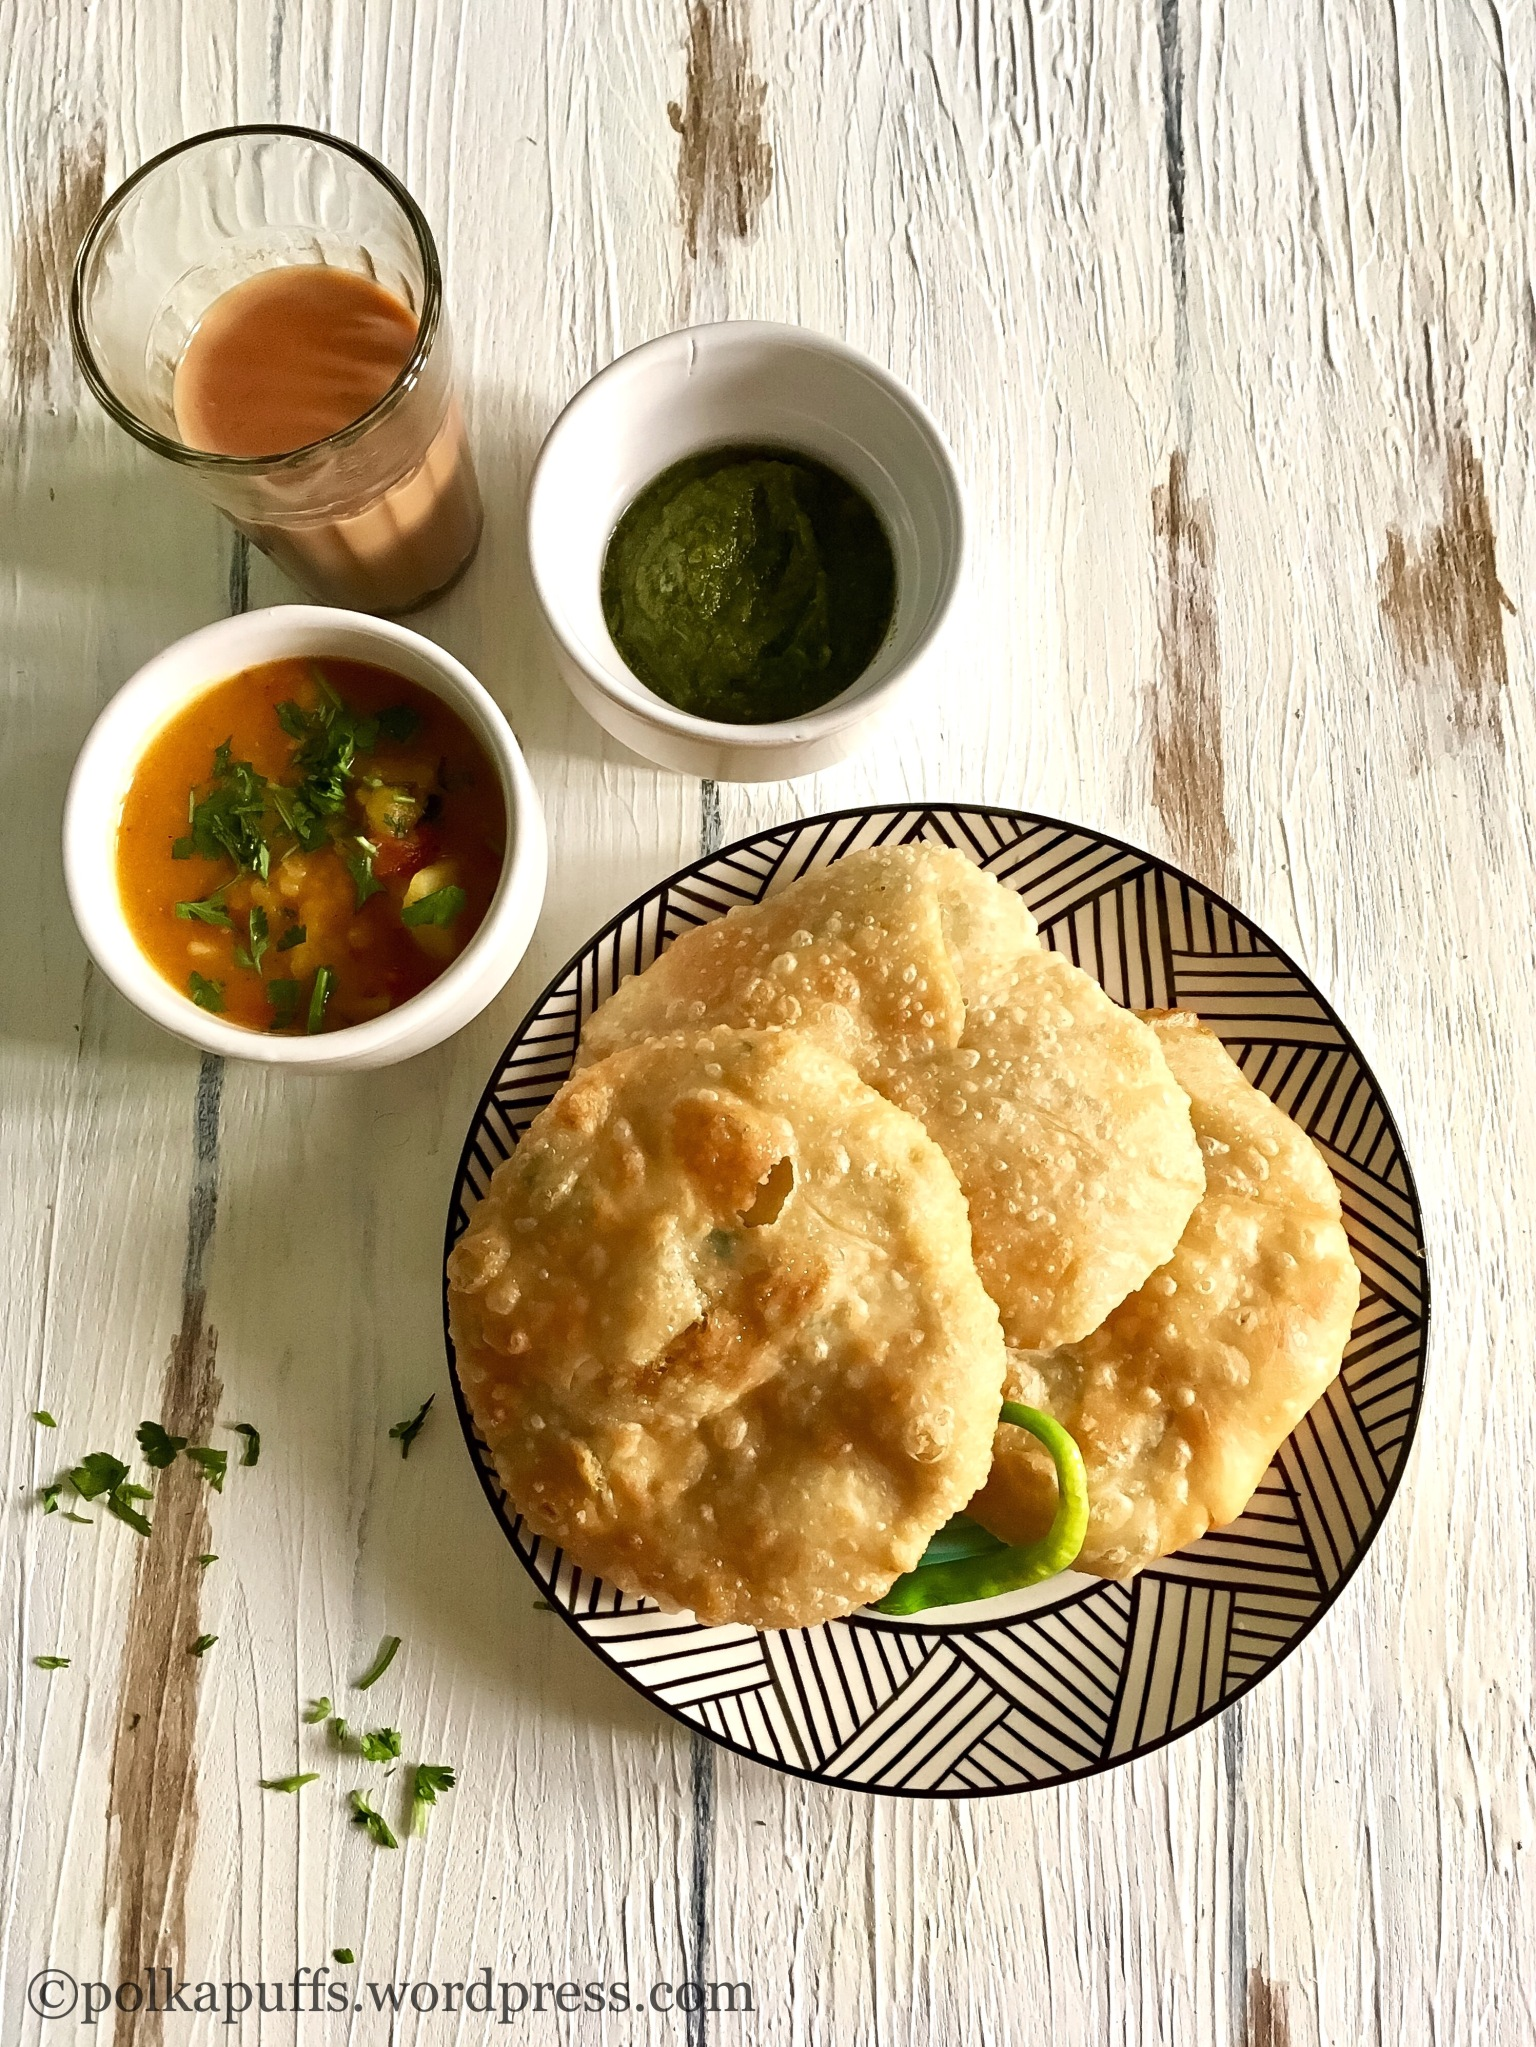 How to make Aloo ki kachori Aloo kachori recipe Easy recipe for Aloo ki kachori Recipe for Aloo Tamatar for kachori Polkapuffs recipes Shreya tiwari recipes